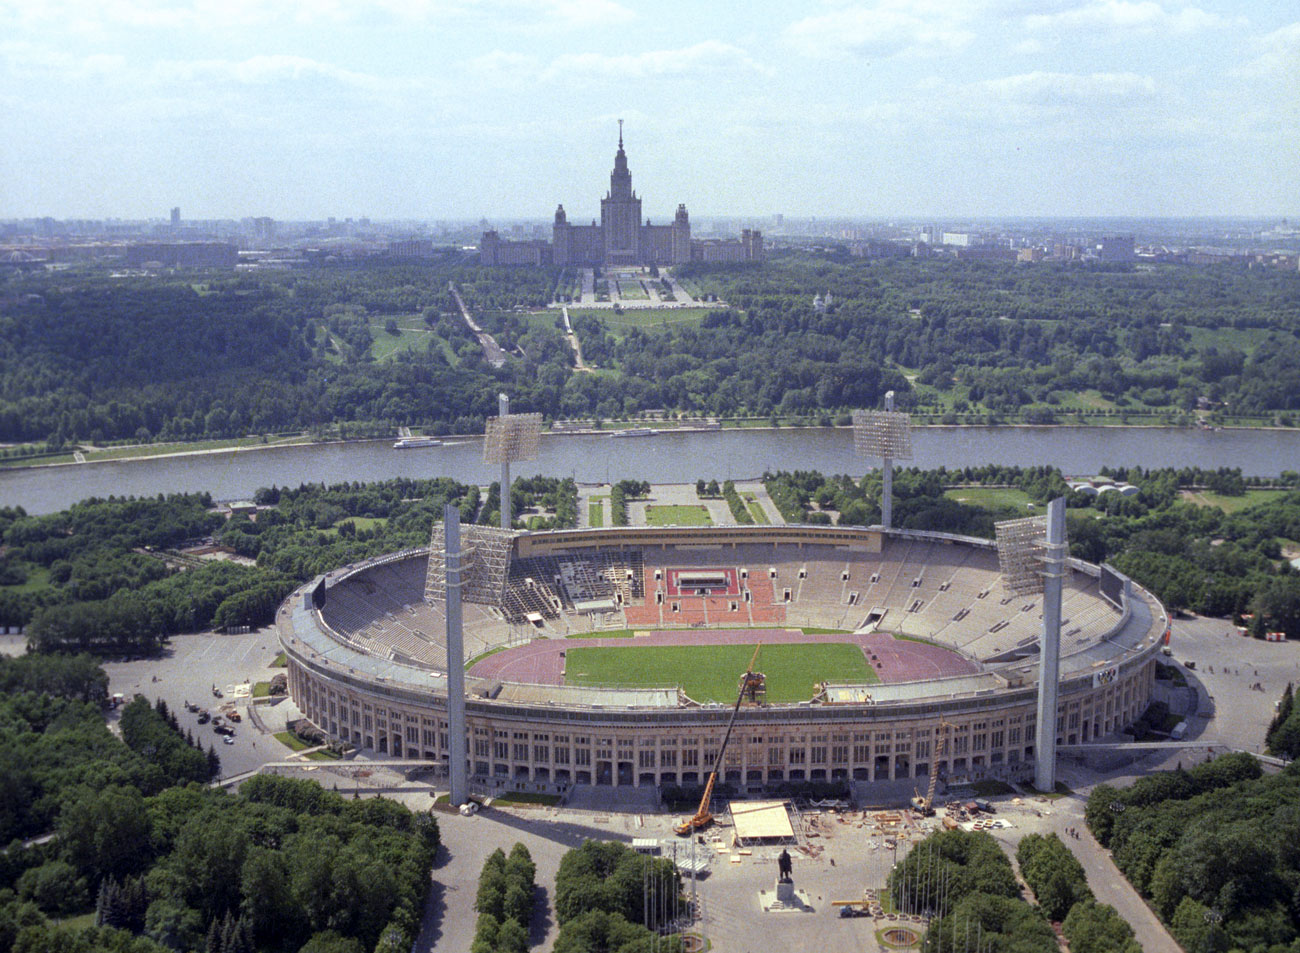 The stadium was placed in a picturesque area beside the Lenin (now Sparrow) Hills and the Main Building of the Moscow State University.